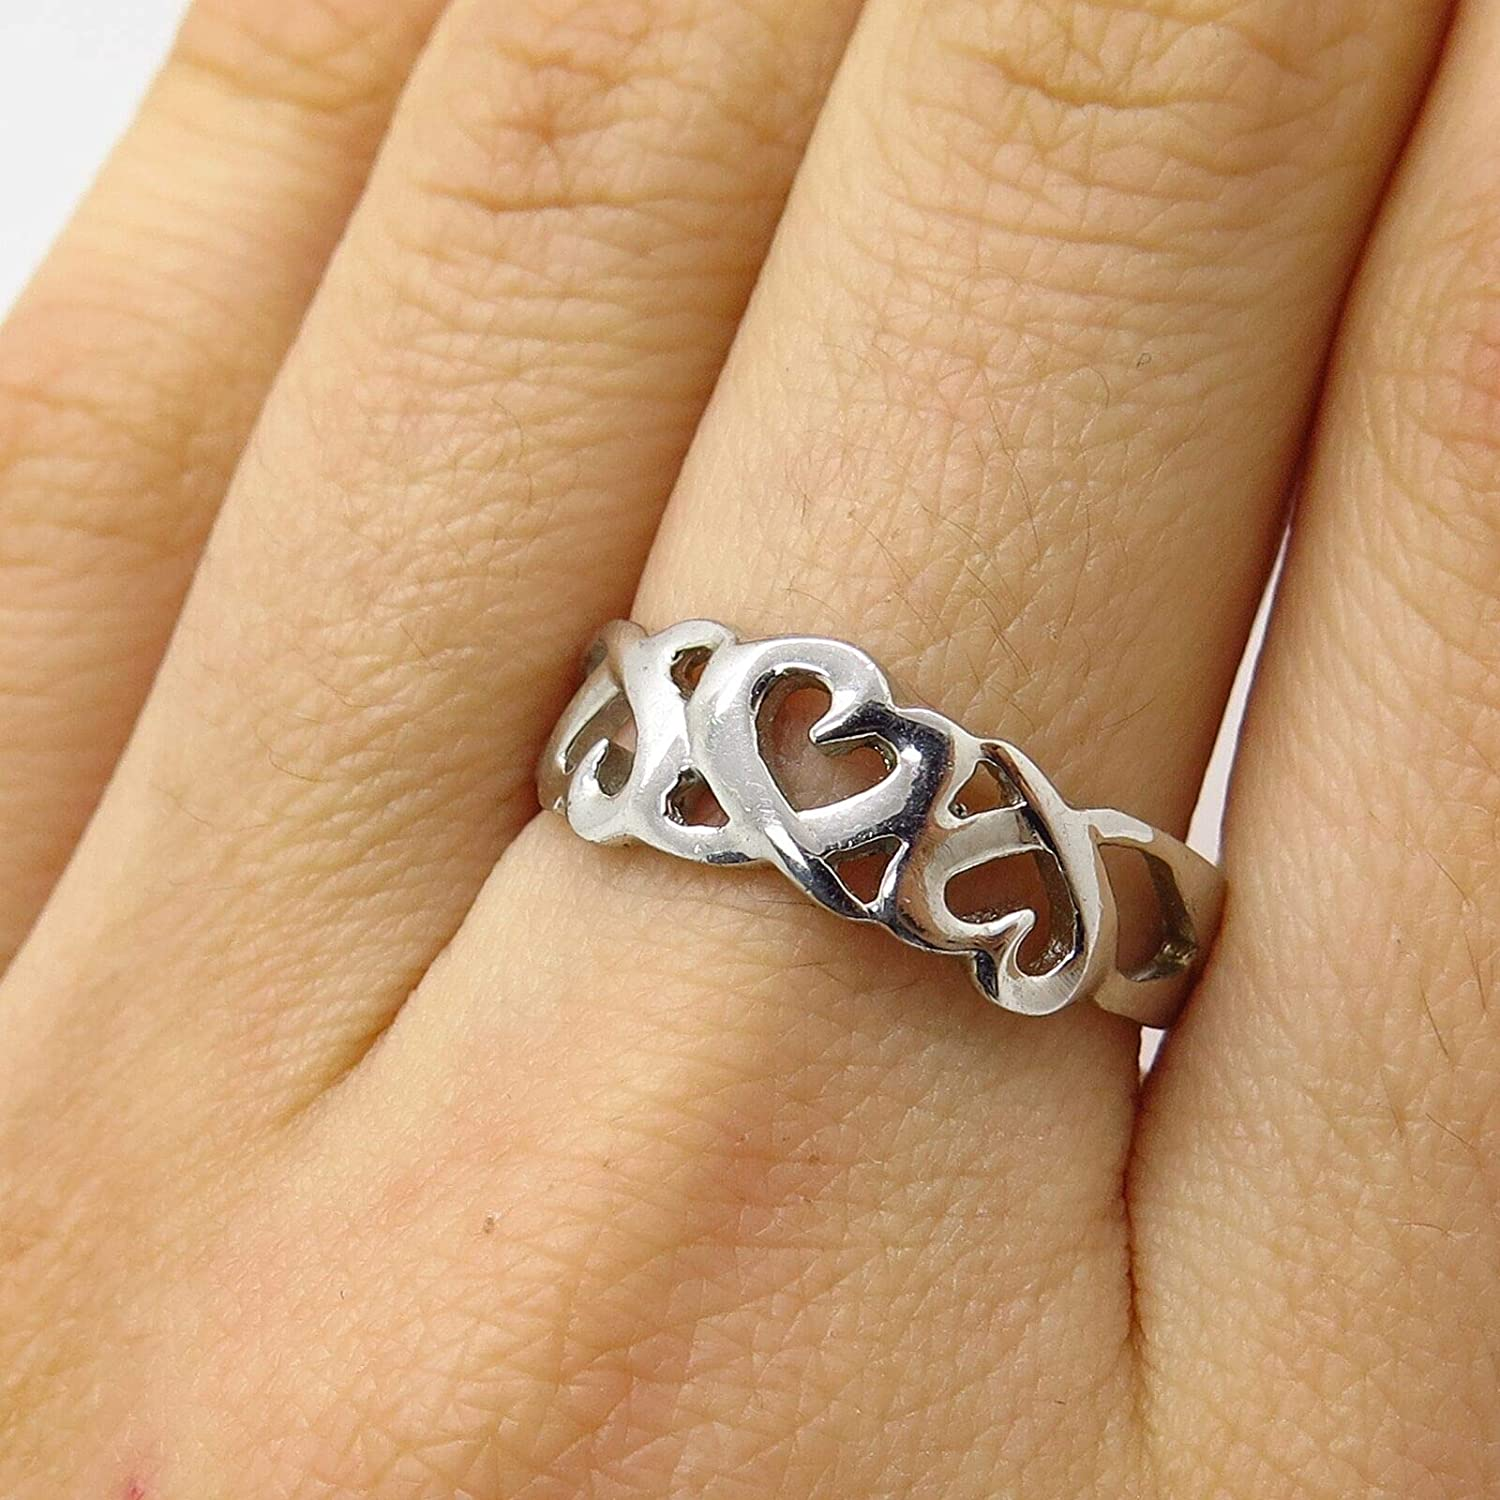 Signed 925 Sterling Silver Open Heart Love Ring Size 8 by Wholesale Charms